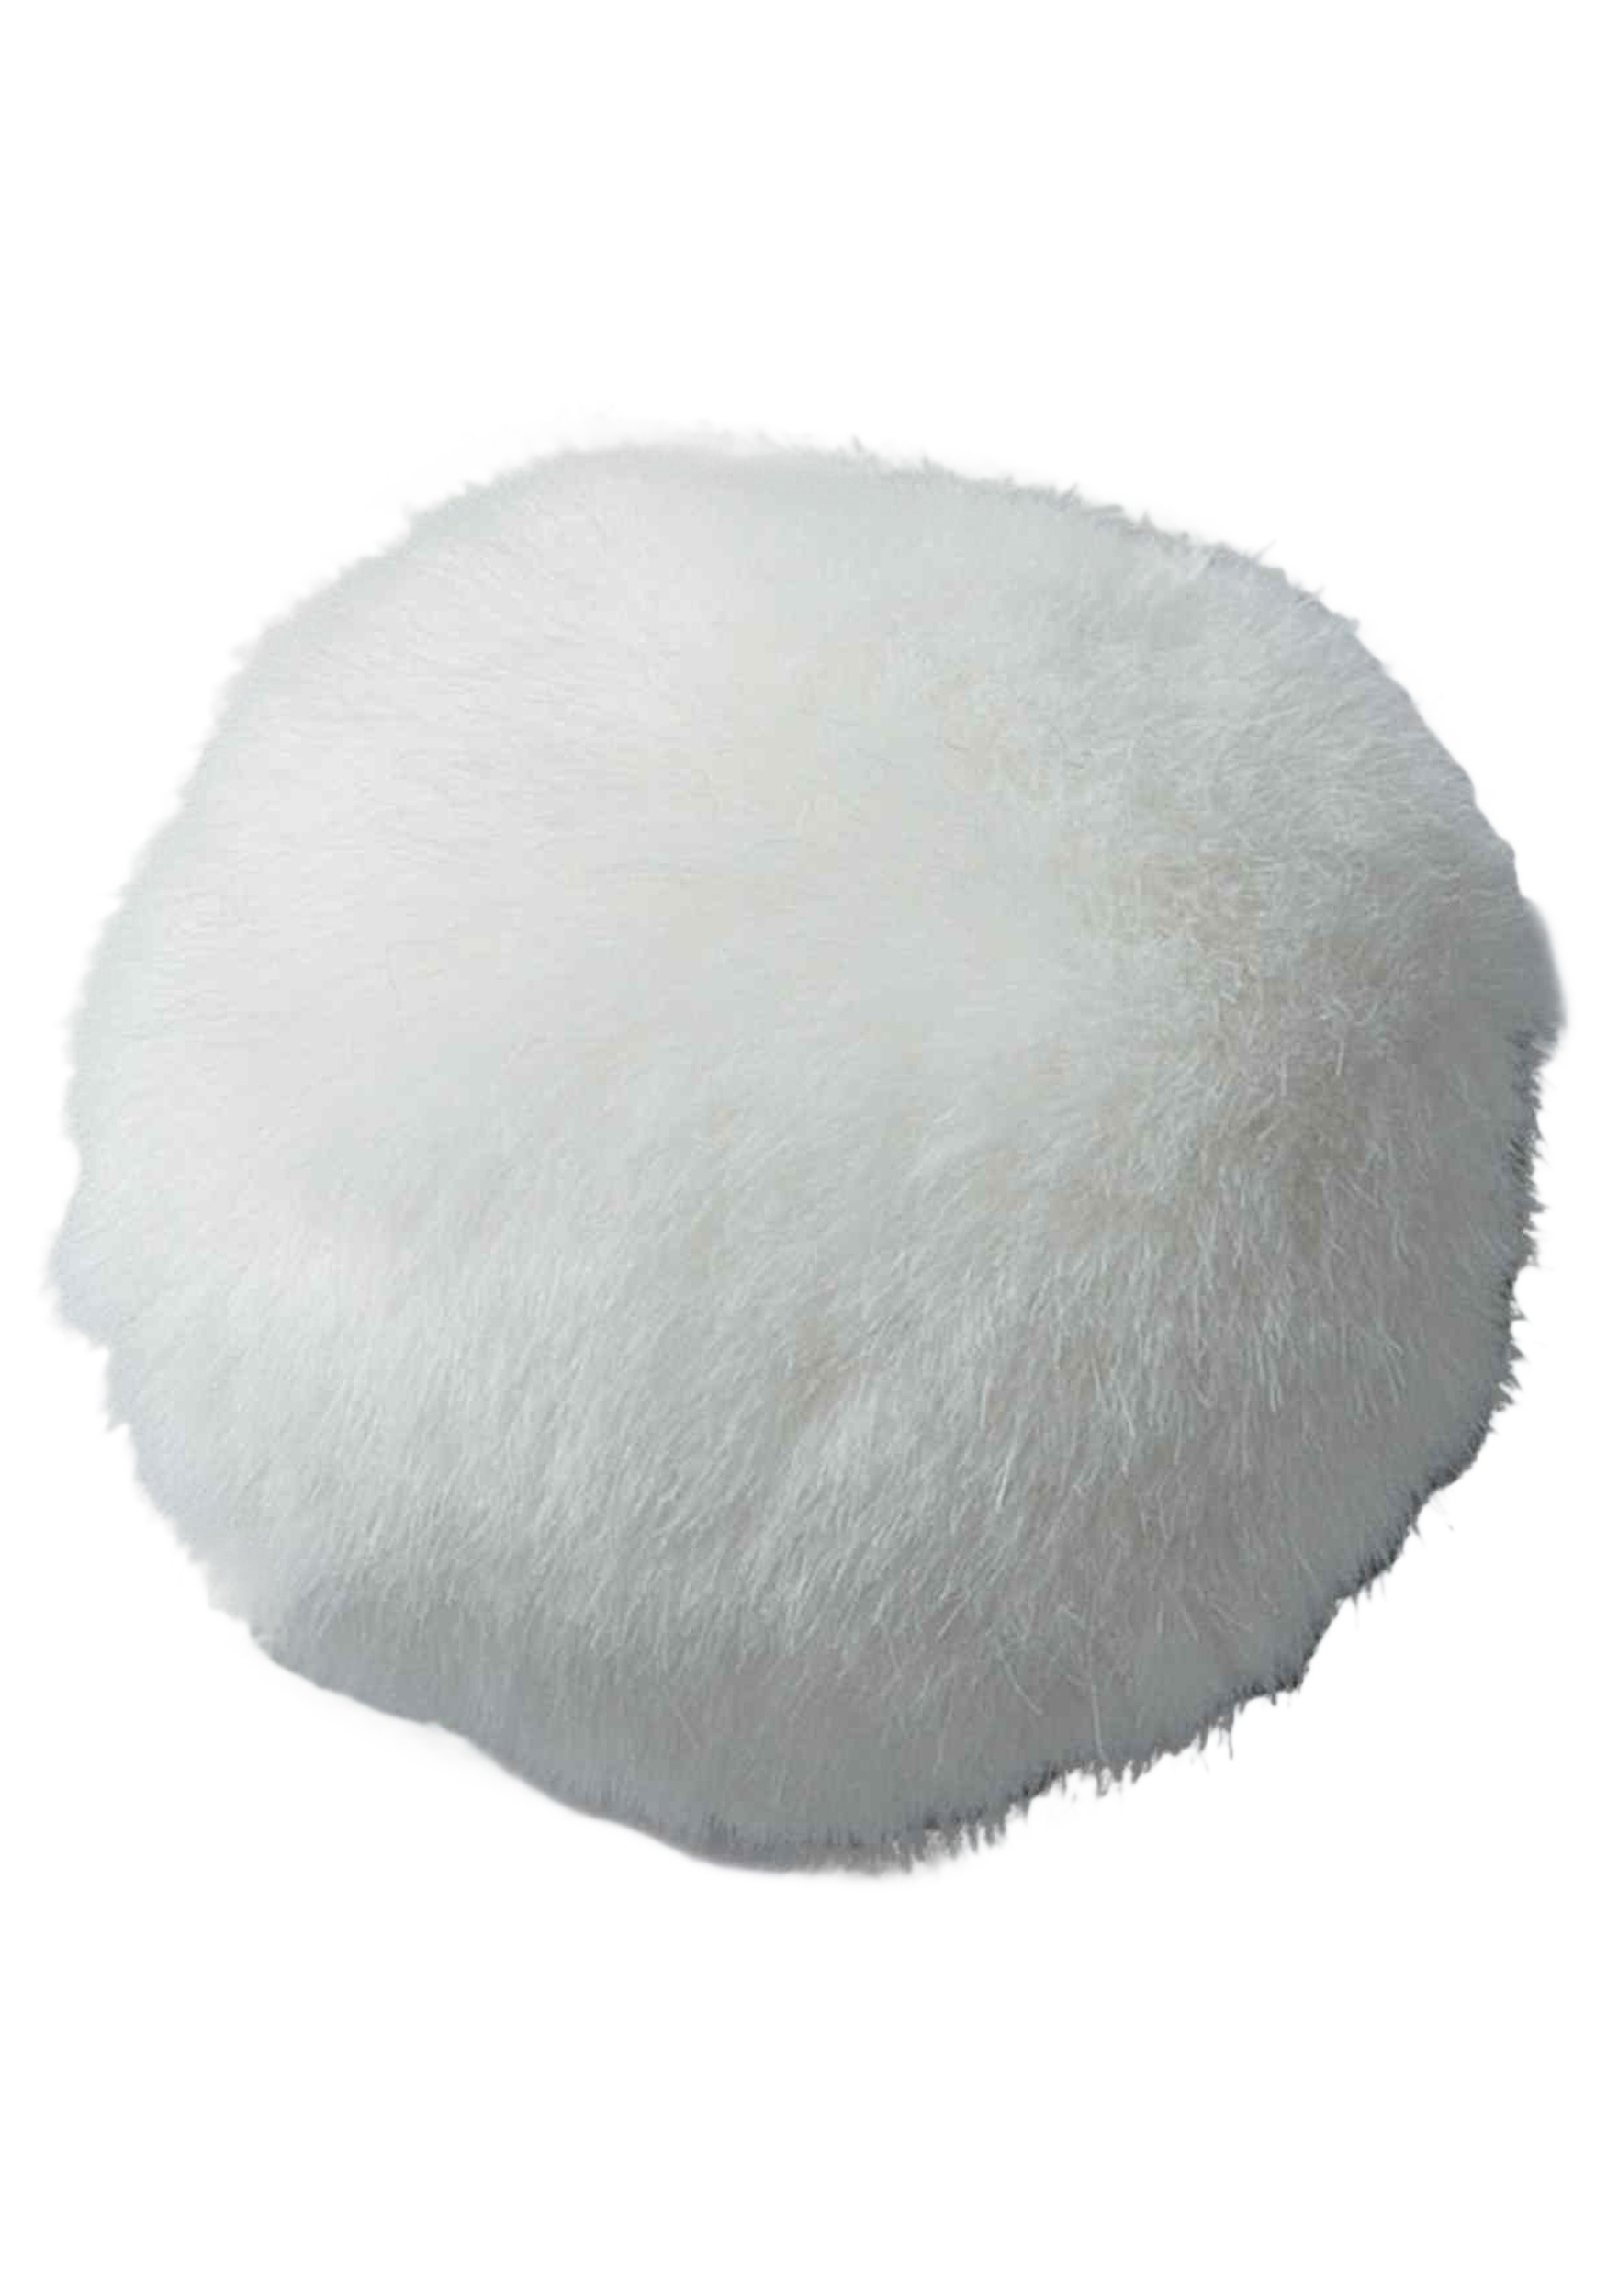 Bunny Tail Png & Free Bunny Tail.png Transparent Images.